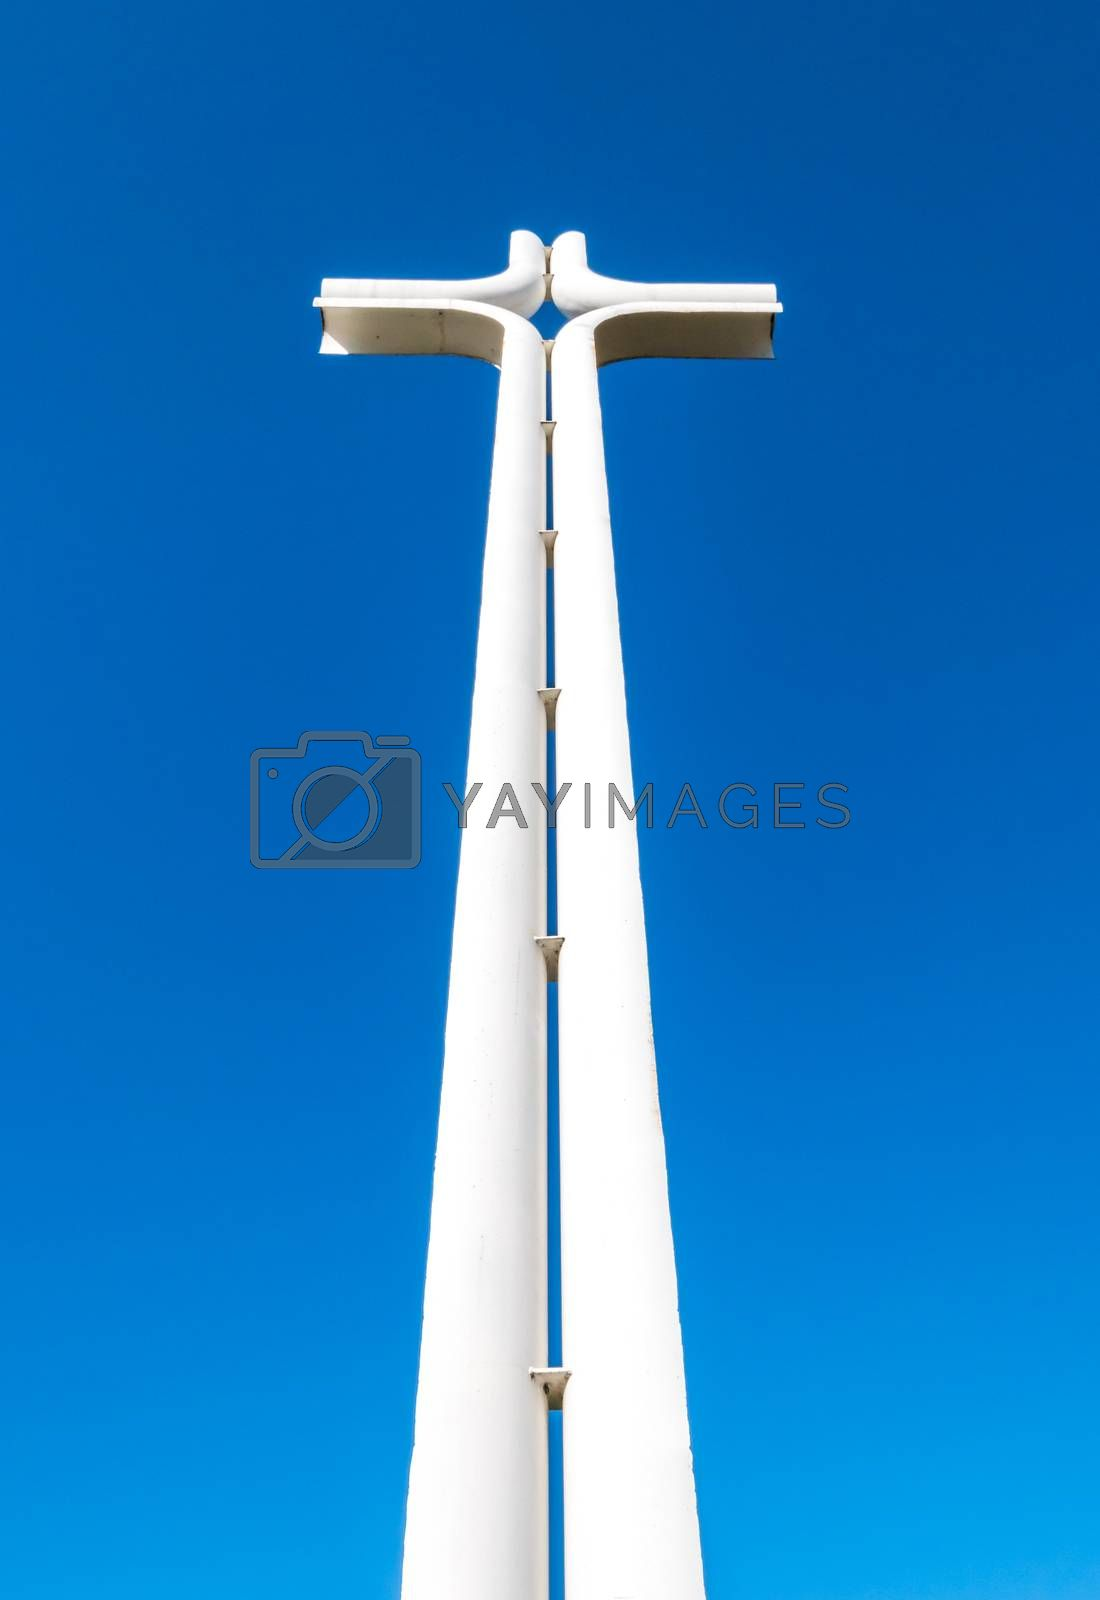 Modern iron cross of white color, isolated on a blue sky background.